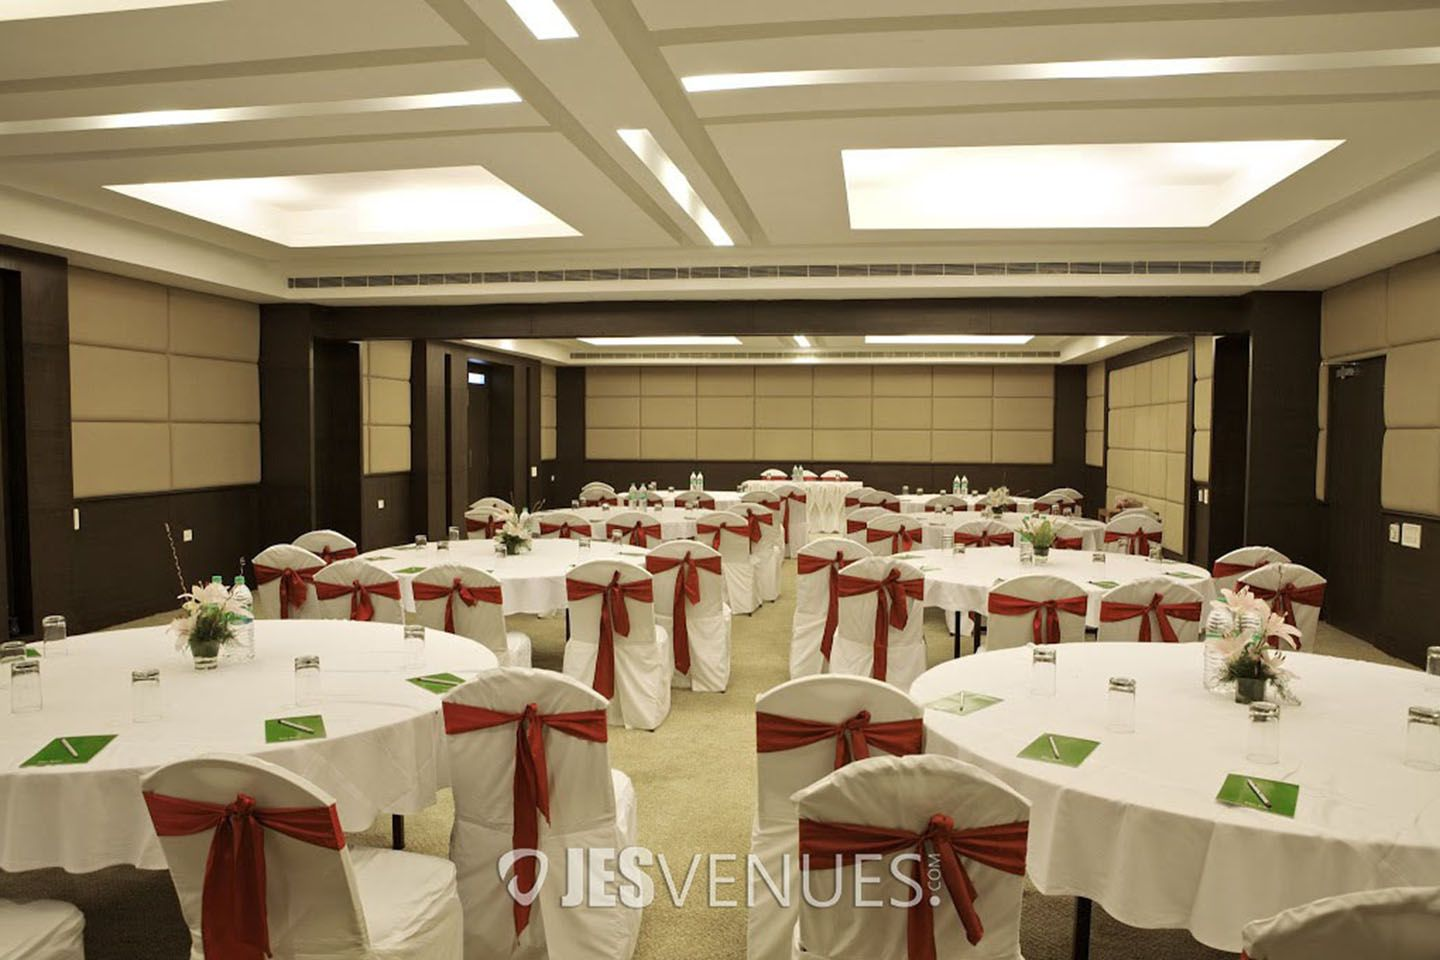 eventspace/Event Space (11).jpg